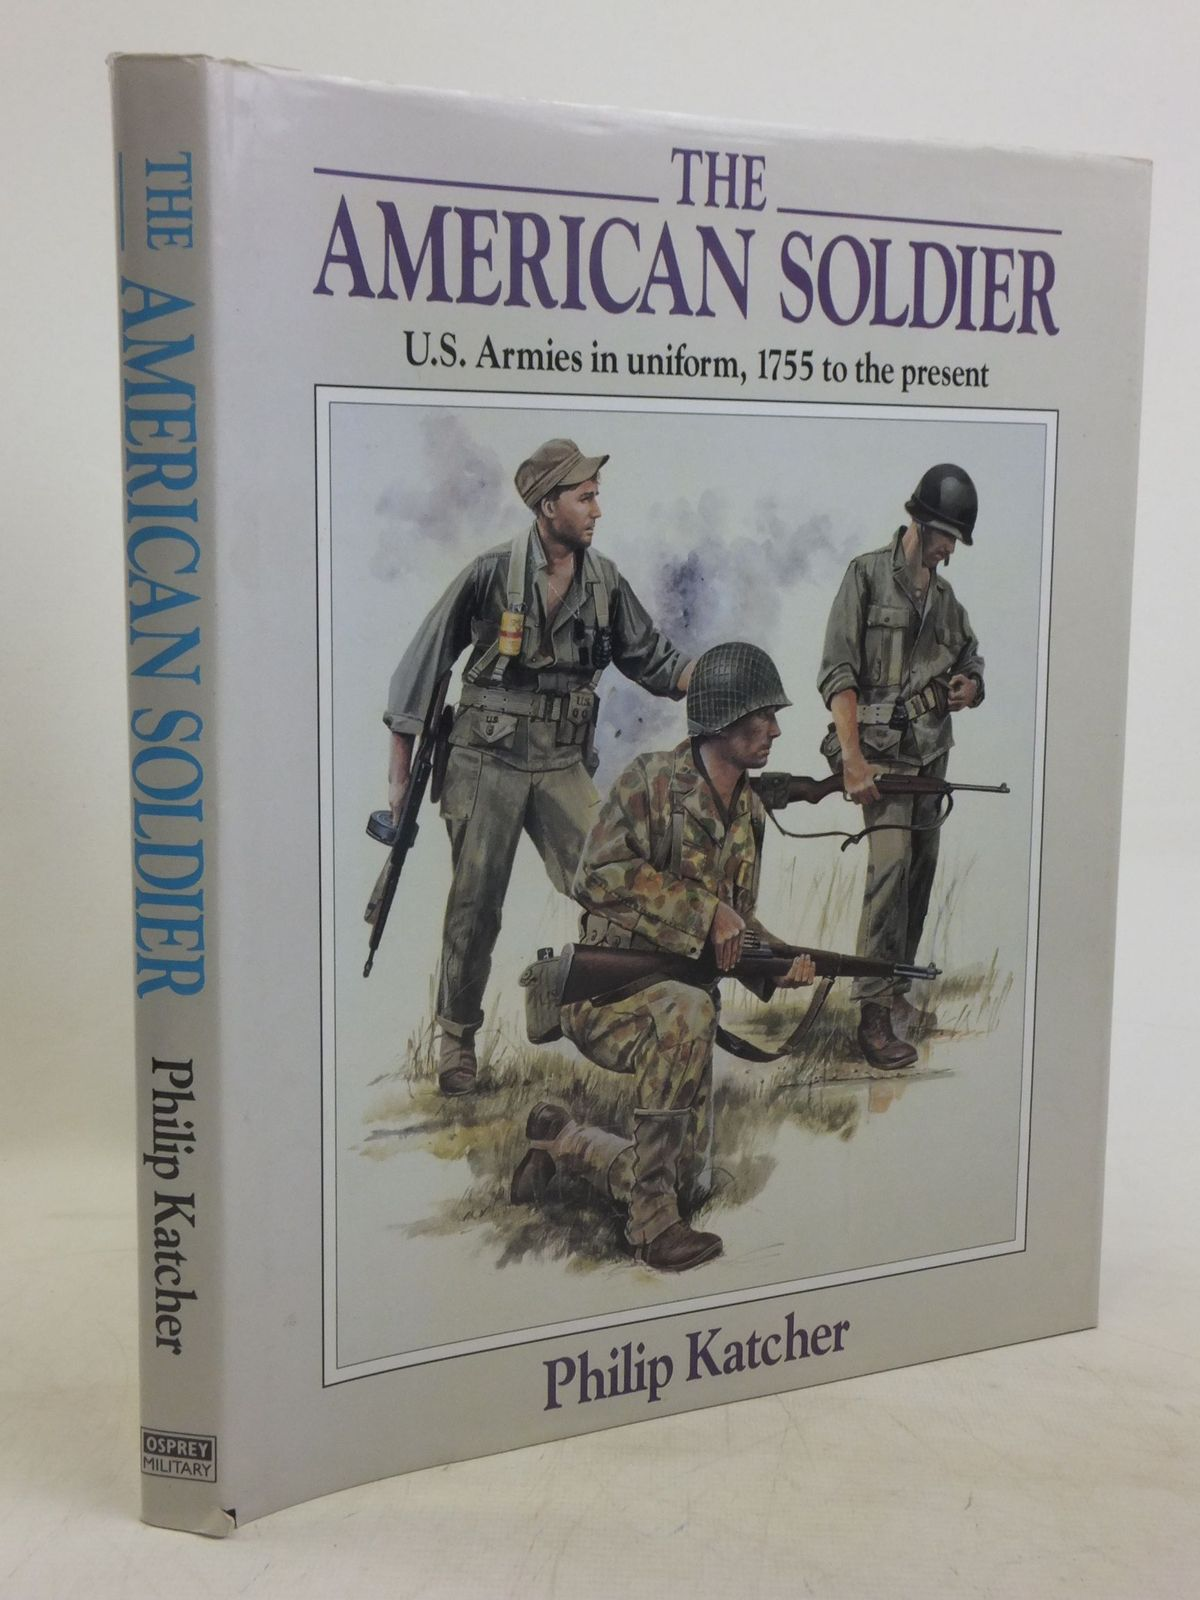 Photo of THE AMERICAN SOLDIER US ARMIES, 1755 TO THE PRESENT written by Katcher, Philip illustrated by Embleton, Gerry published by Osprey Military (STOCK CODE: 1712539)  for sale by Stella & Rose's Books